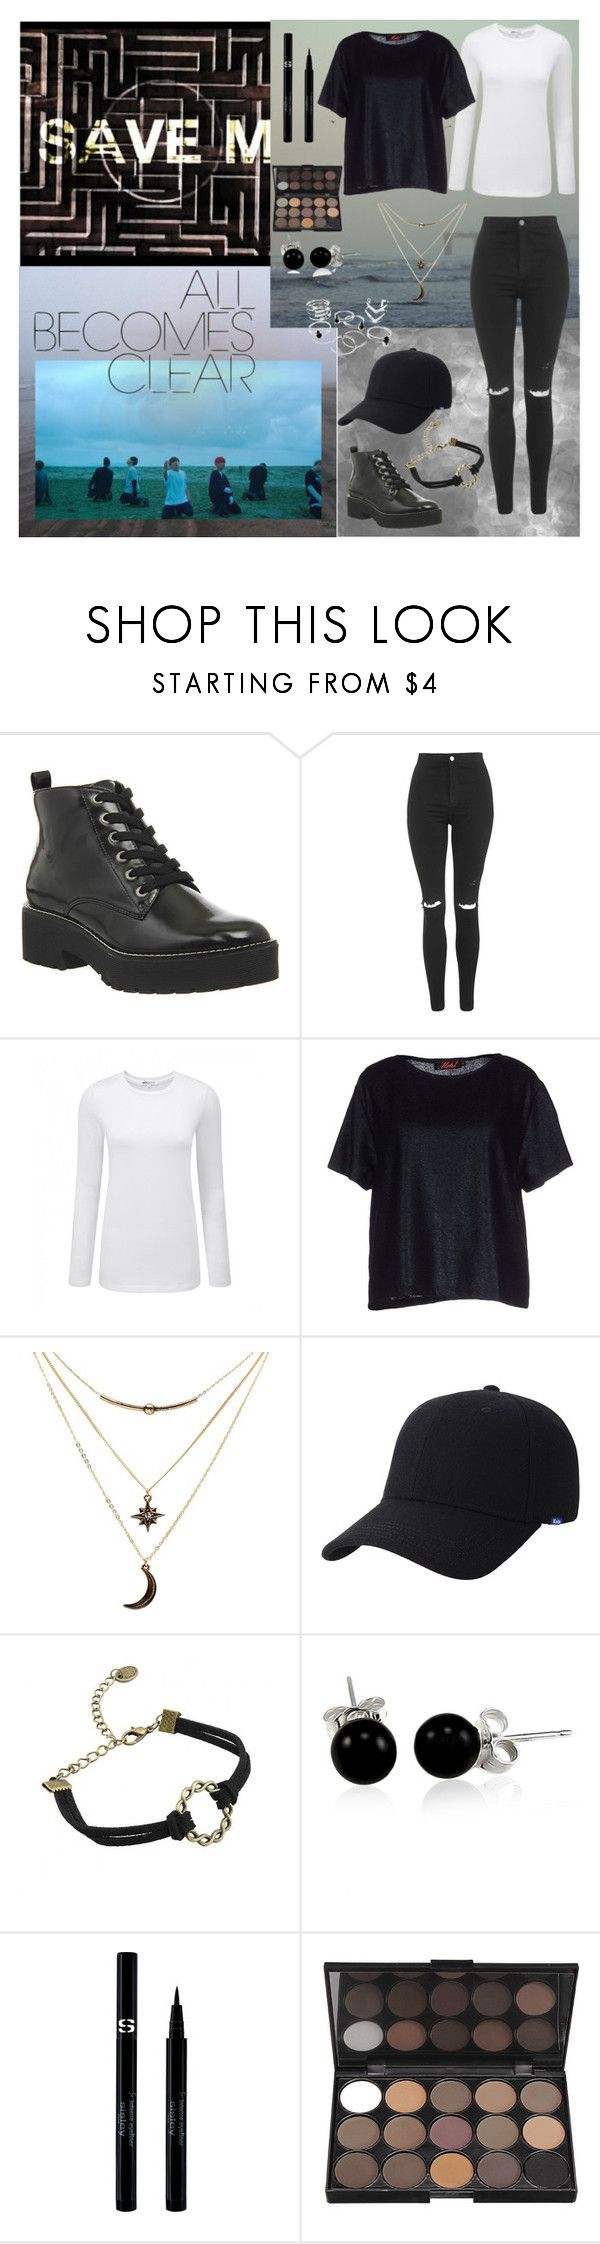 """""""BTS 'Save Me' MV inspired outfit"""" by lina0401 ❤ liked on Polyvore featuring Office, Topshop, Motel, Charlotte Russe, Keds, Bling Jewelry and Sisley"""